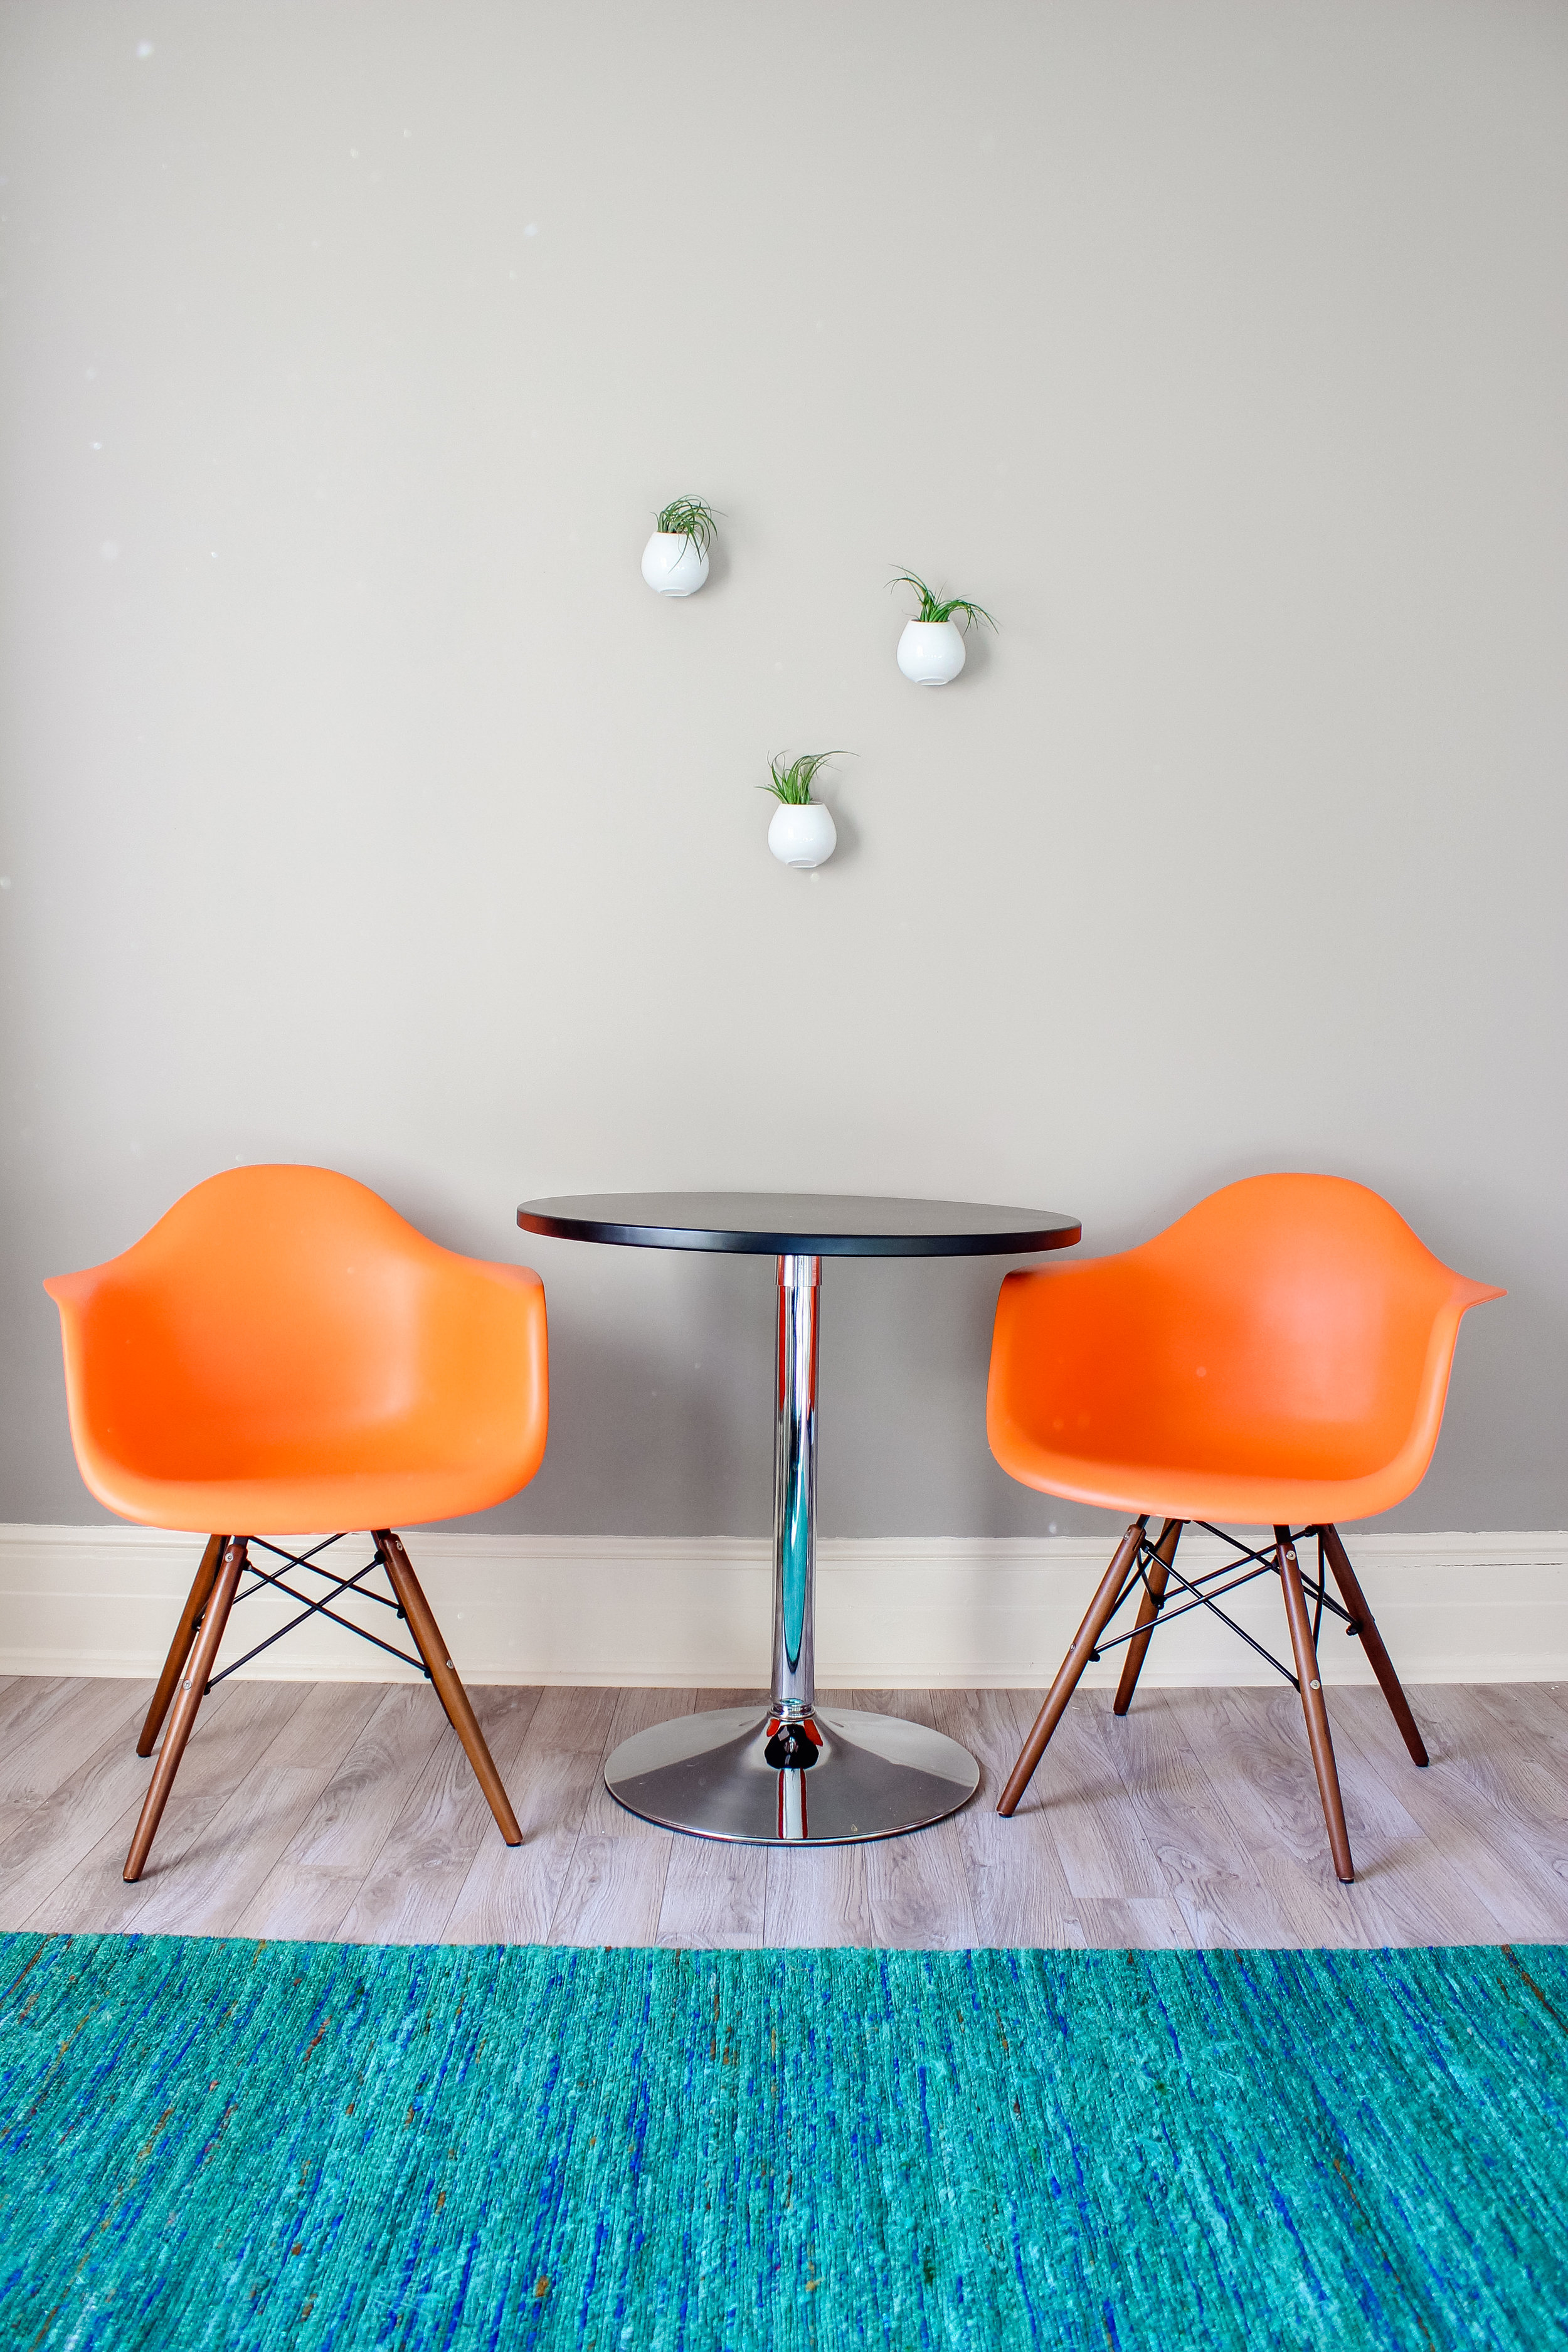 Colorful, modern apartment decor inspiration from a historic 1 bedroom turned Airbnb!